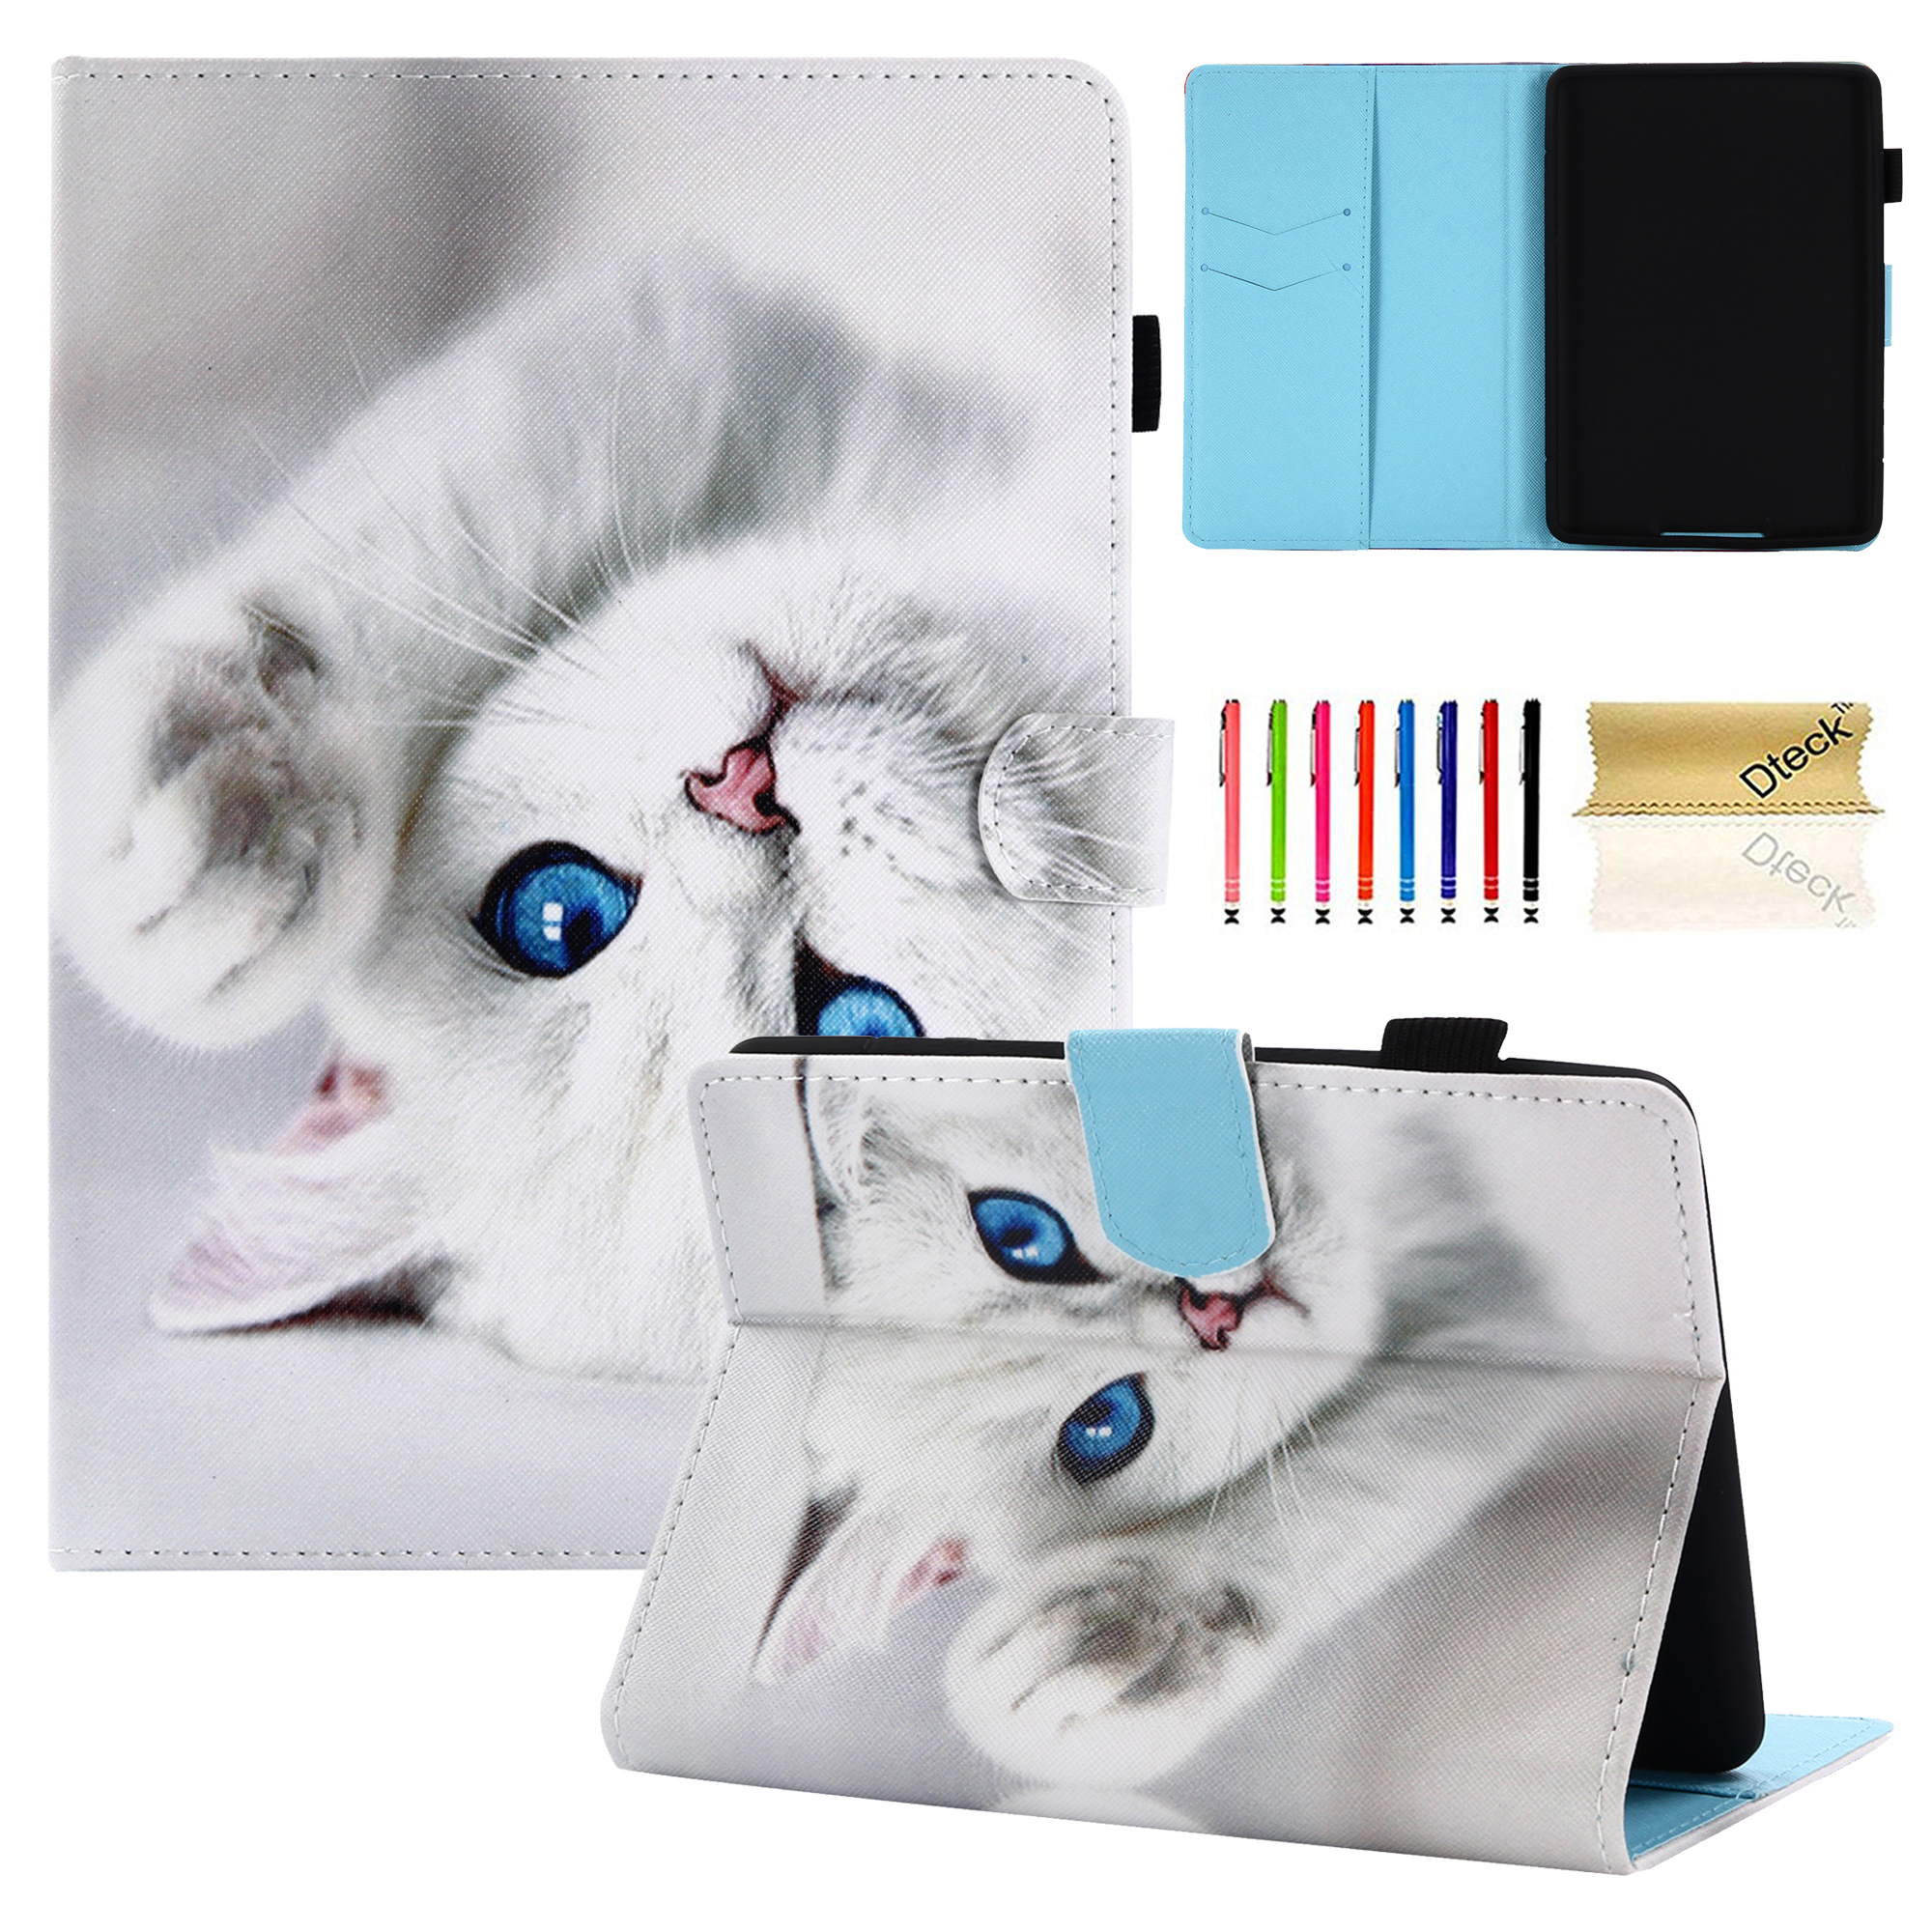 Kindle Paperwhite Kids Case, Goodest Folio Stand Case Cover with Auto Wake/ Sleep for Amazon Kindle Paperwhite 3 2 1 (Fits all 2012 2013 2014 2015 and 2016 Versions, 6 inch Display), White Cat